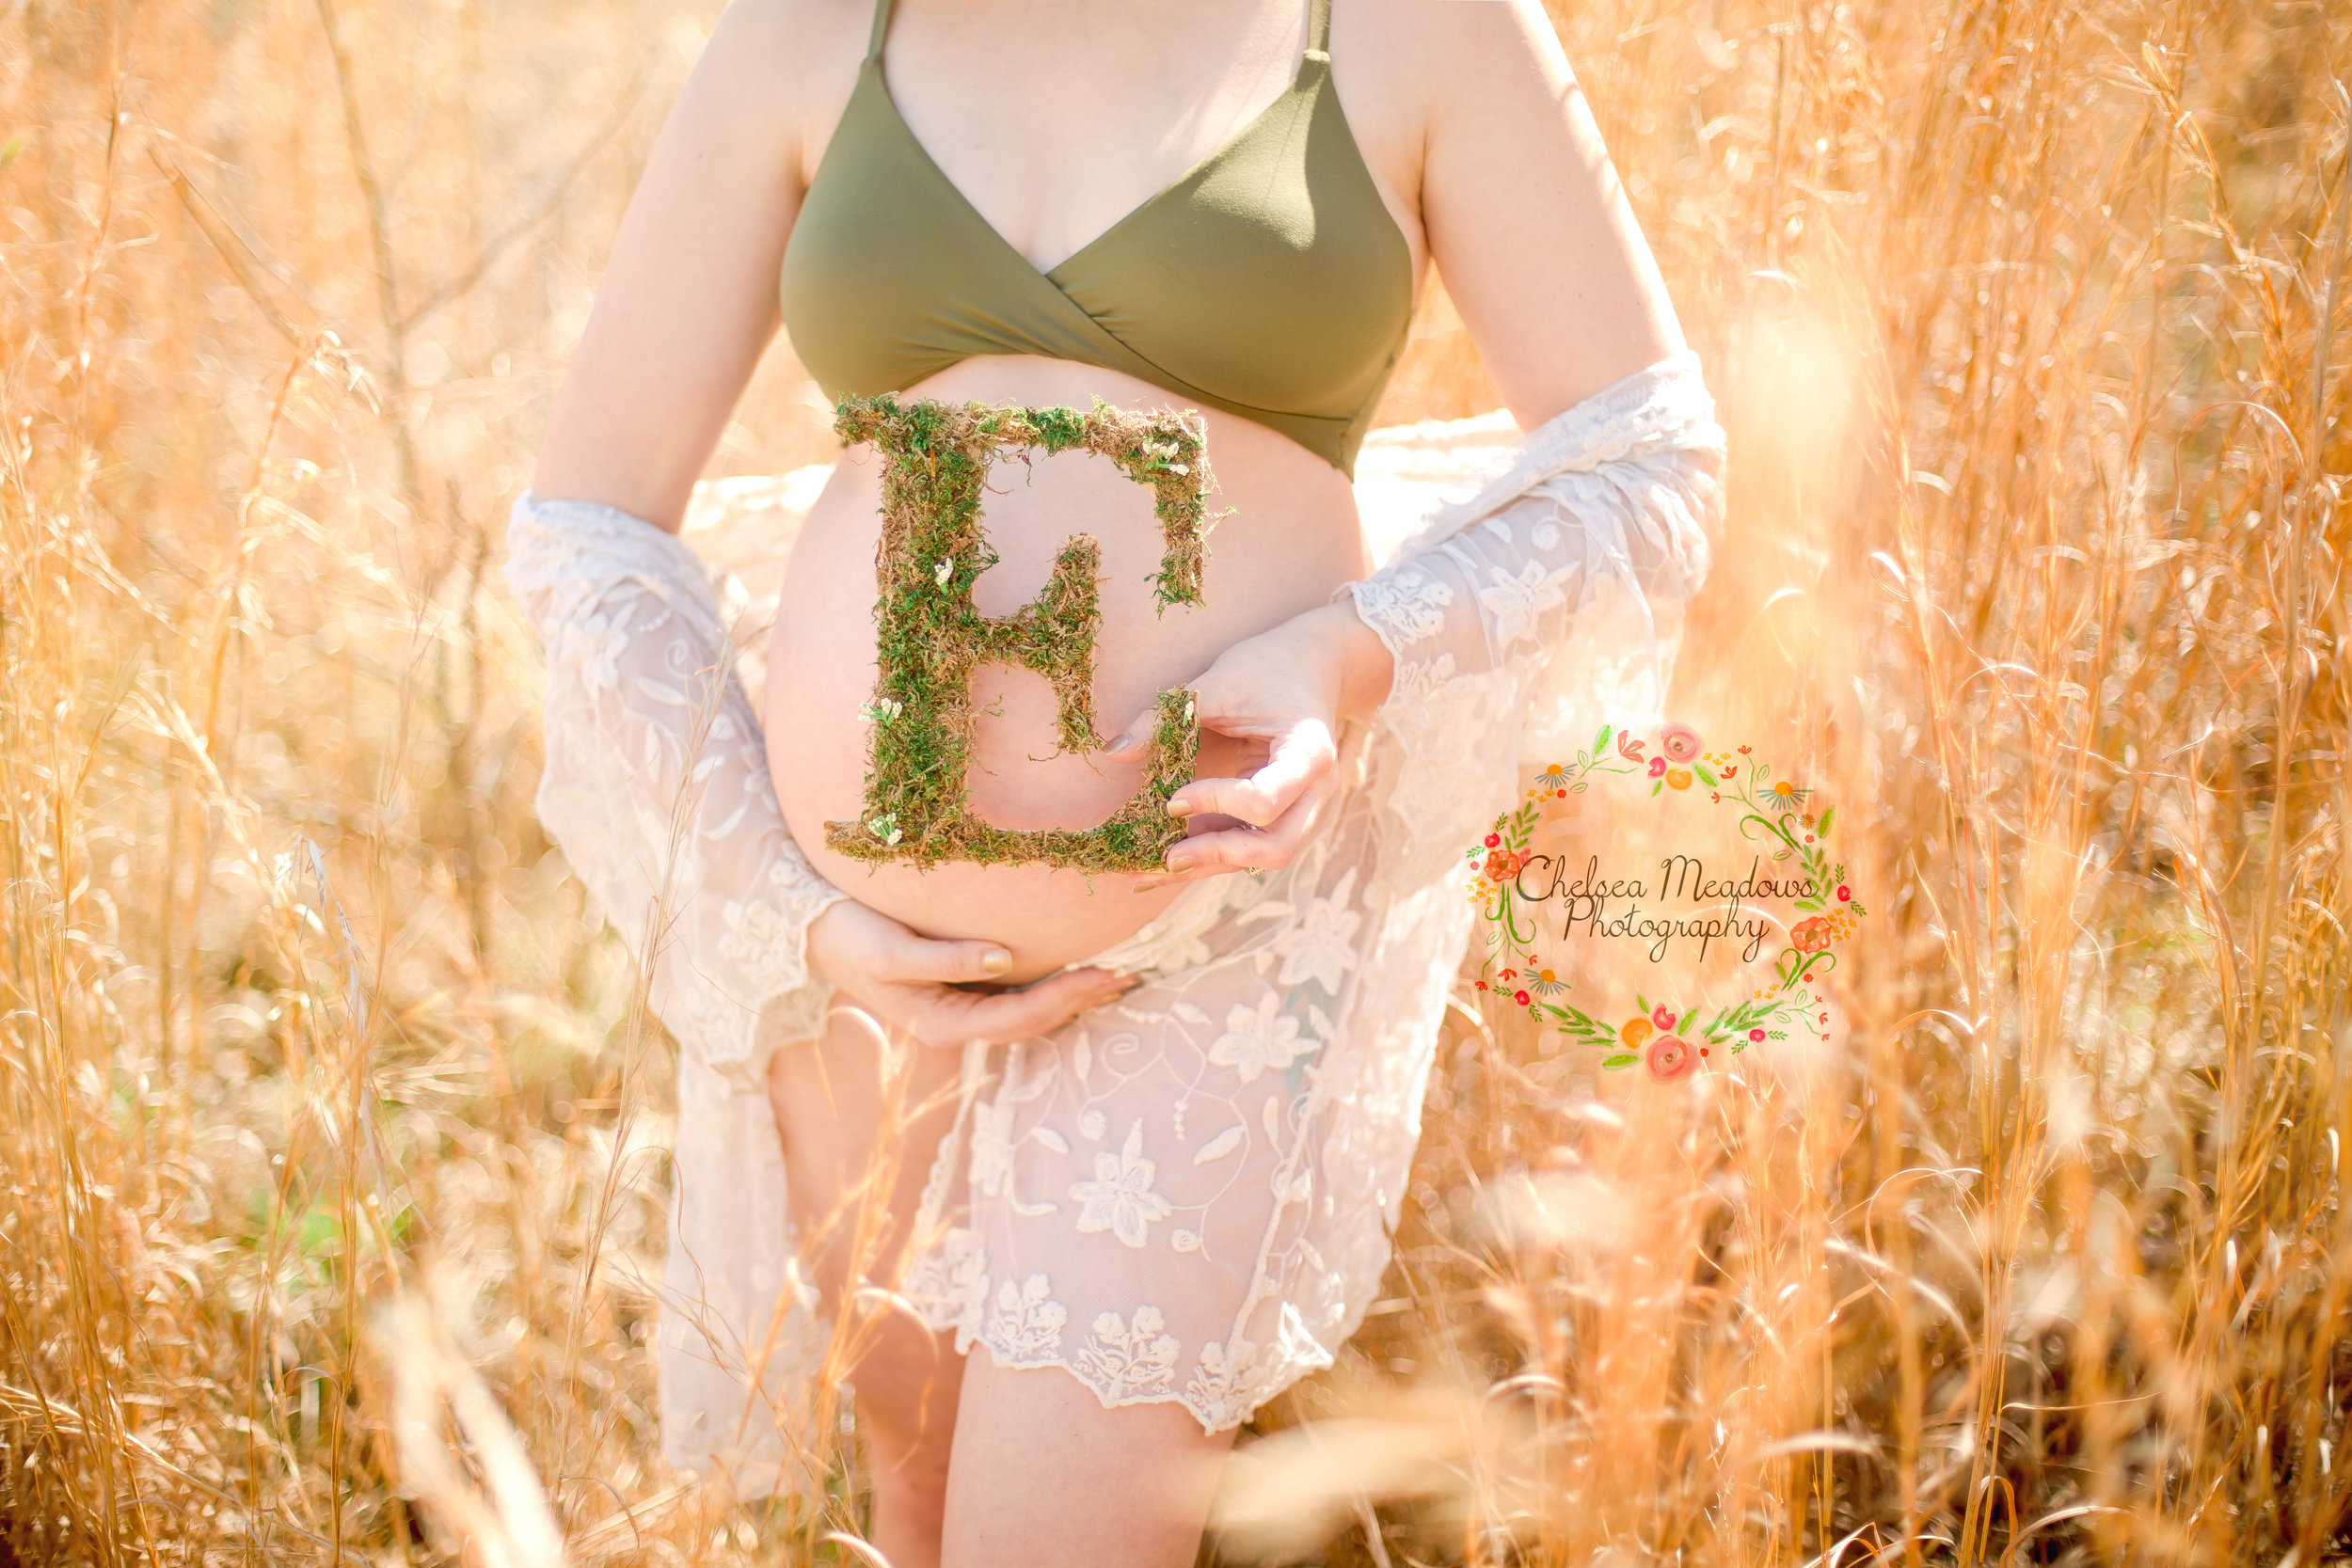 Brittany Maternity Photos - Nashville Maternity Photography - Chelsea Meadows Photography (3)_edited-1.jpg